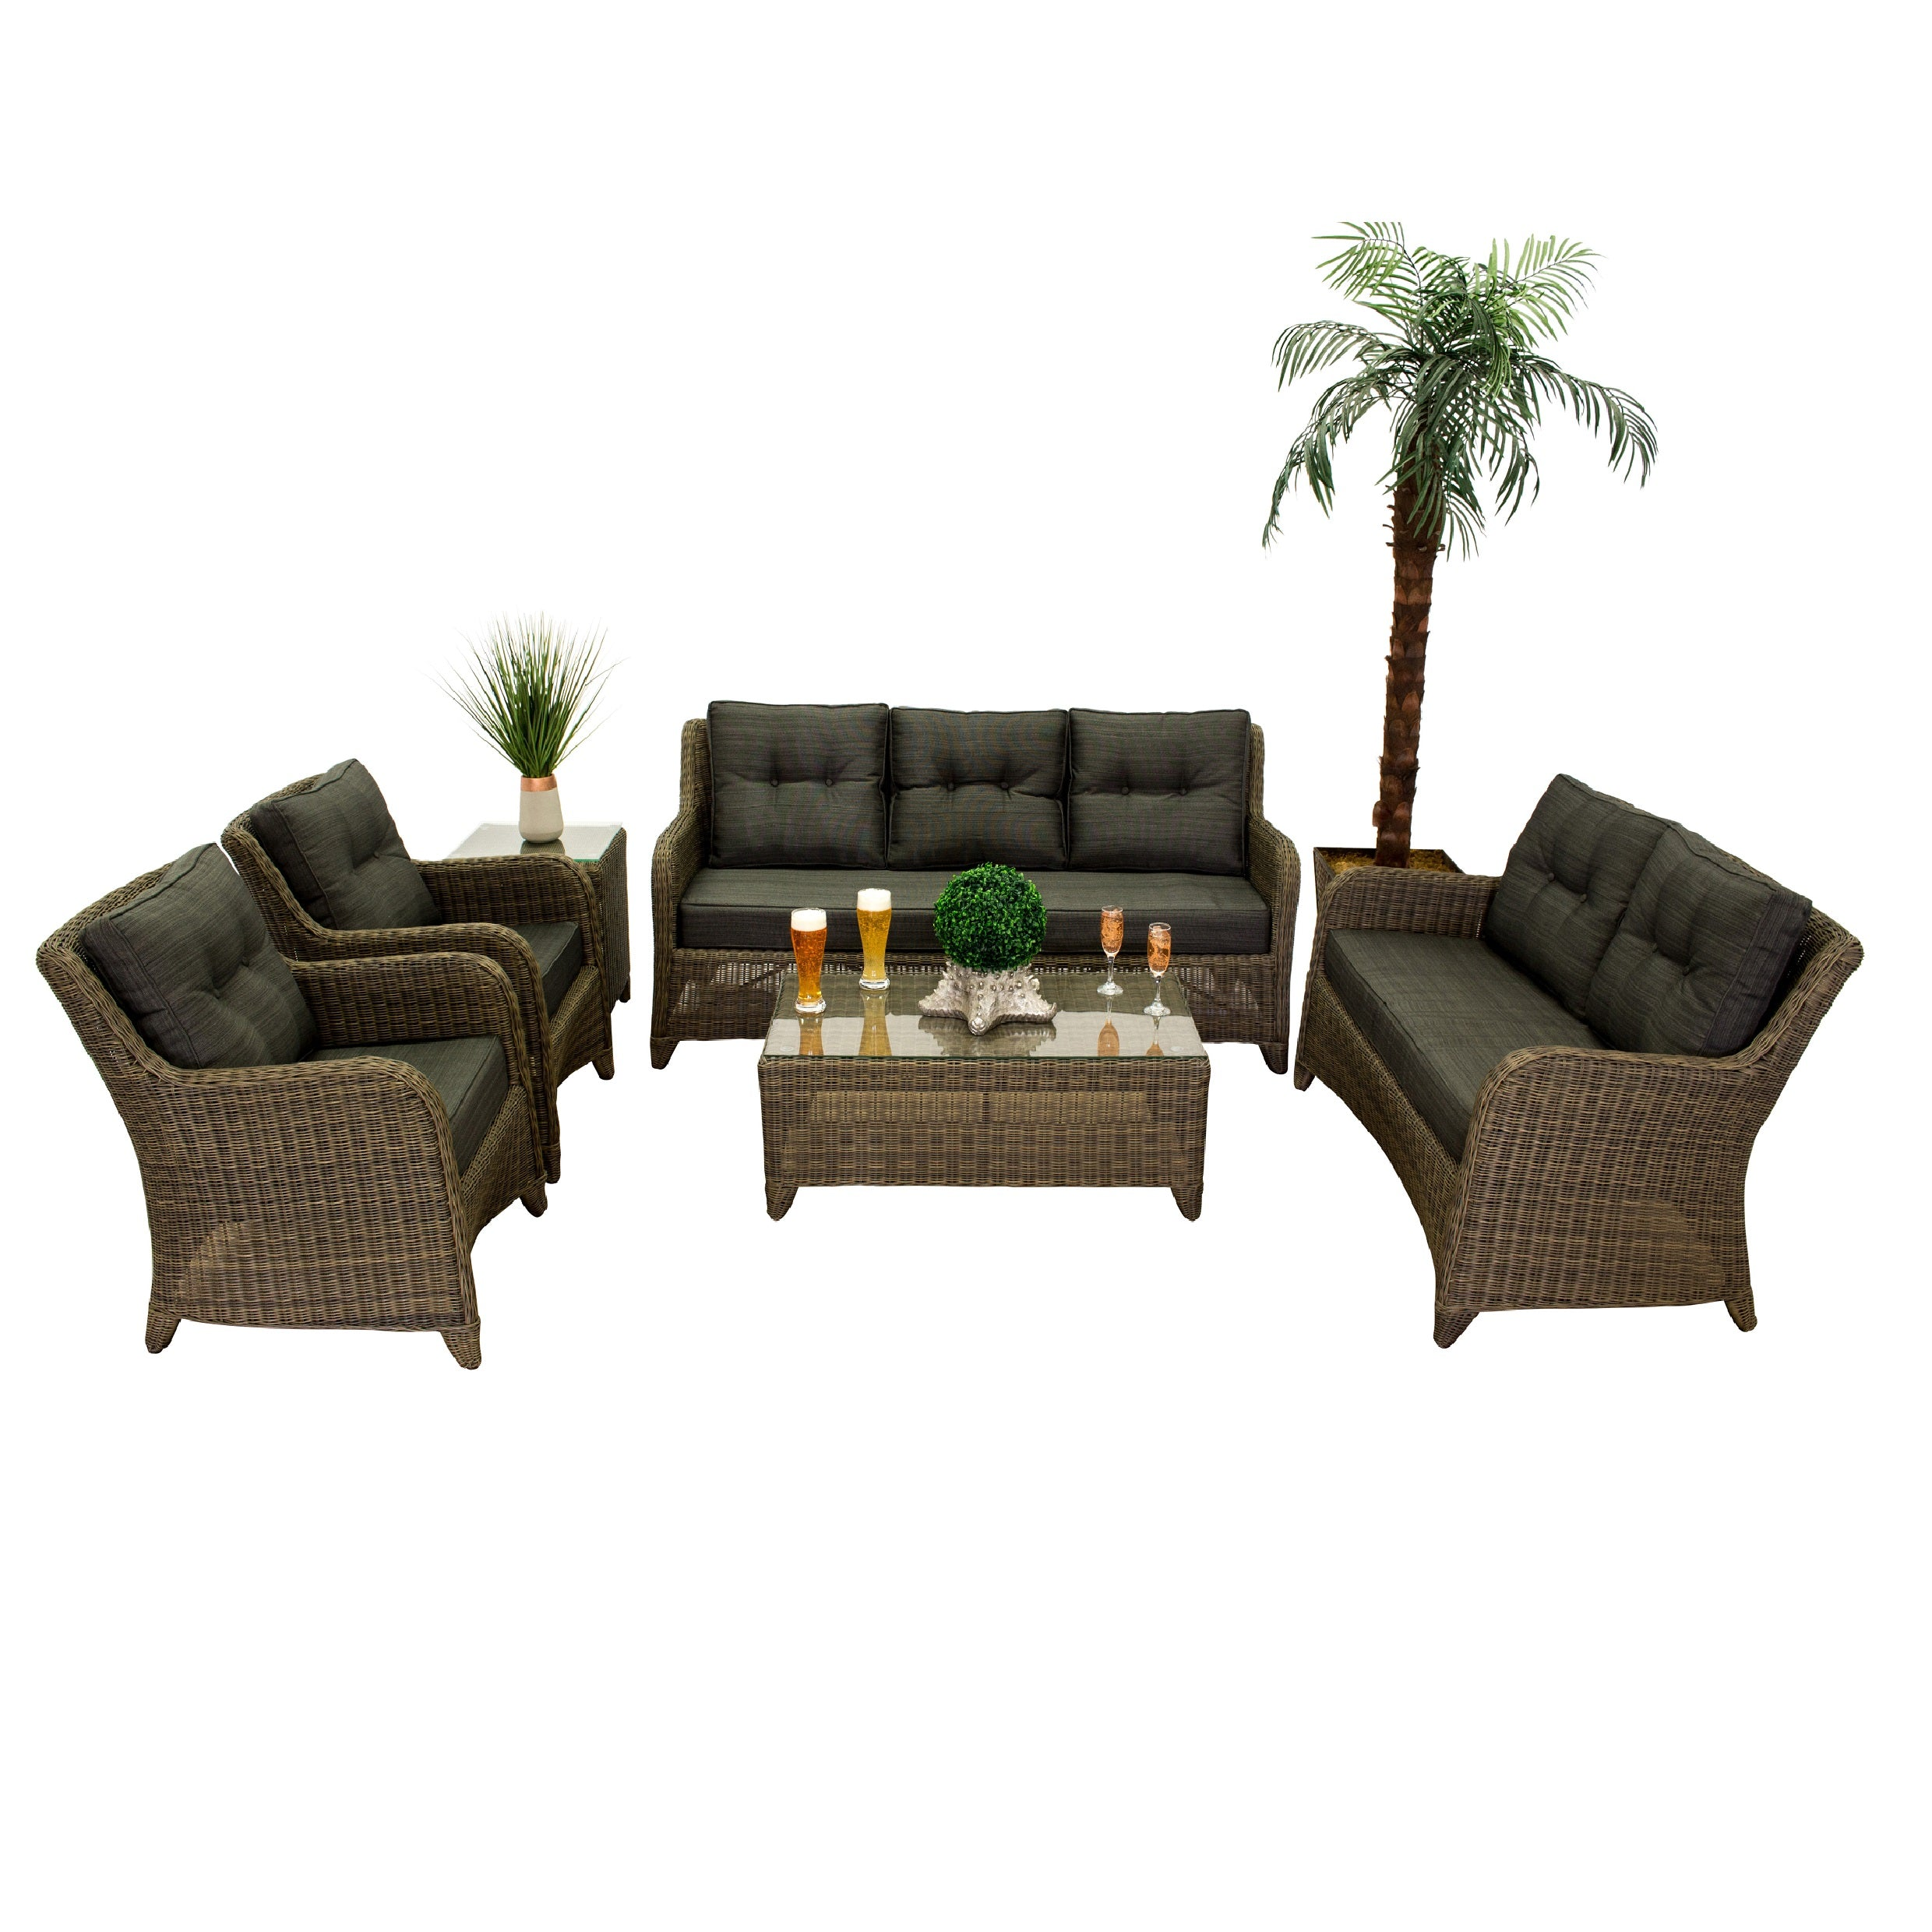 The Classic -  6pc. Sofa Set